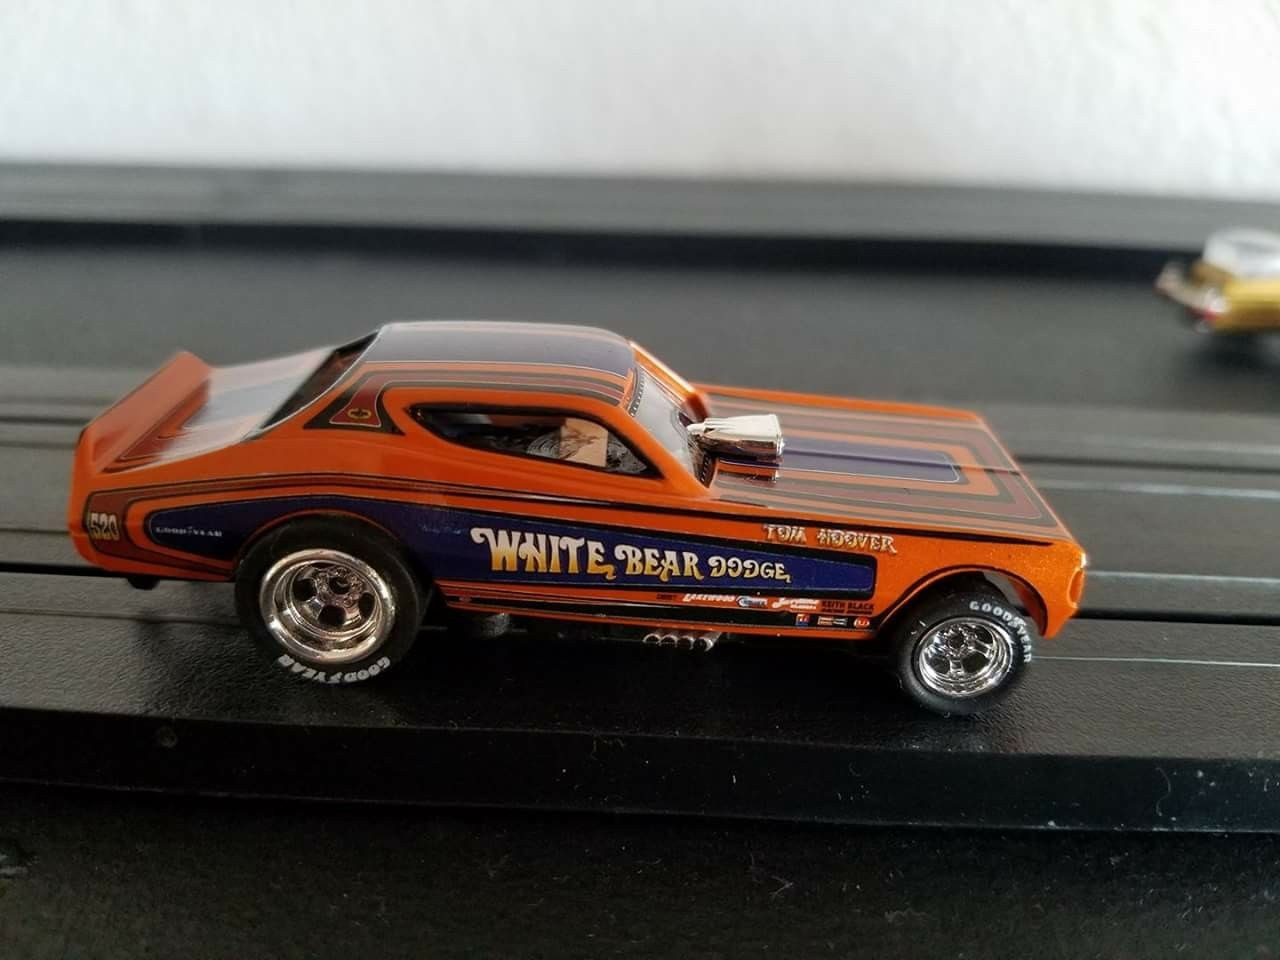 Pin by Ed C on HO Slot Car Drag Racing (With images) Ho